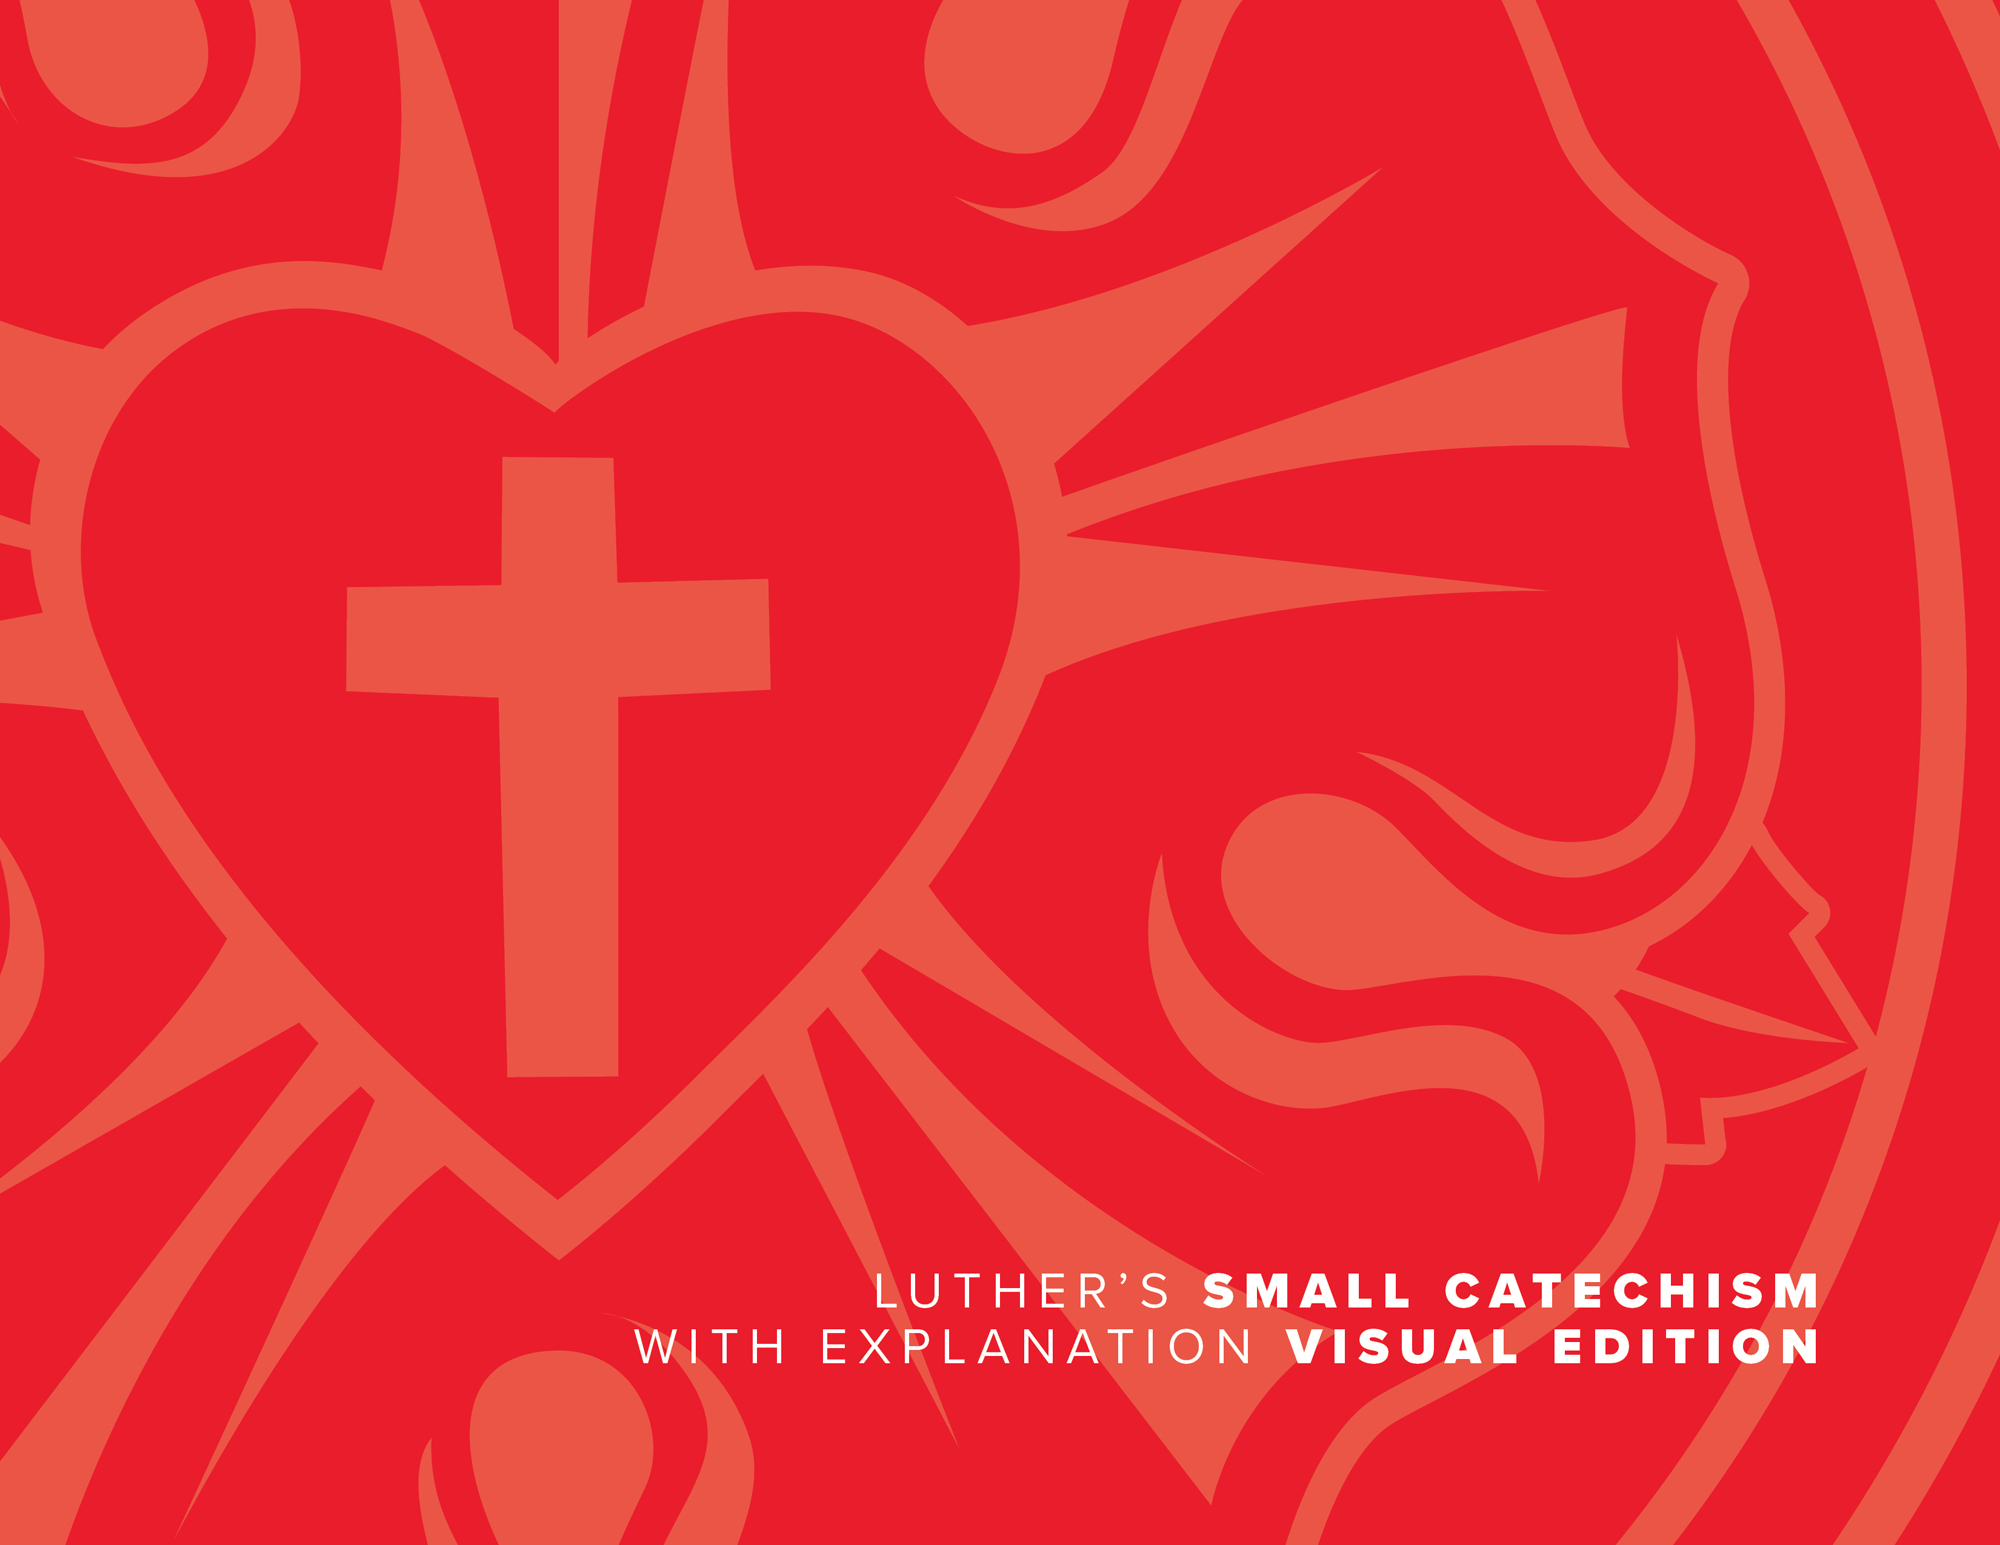 Missionary and Catechism: a selection of sites